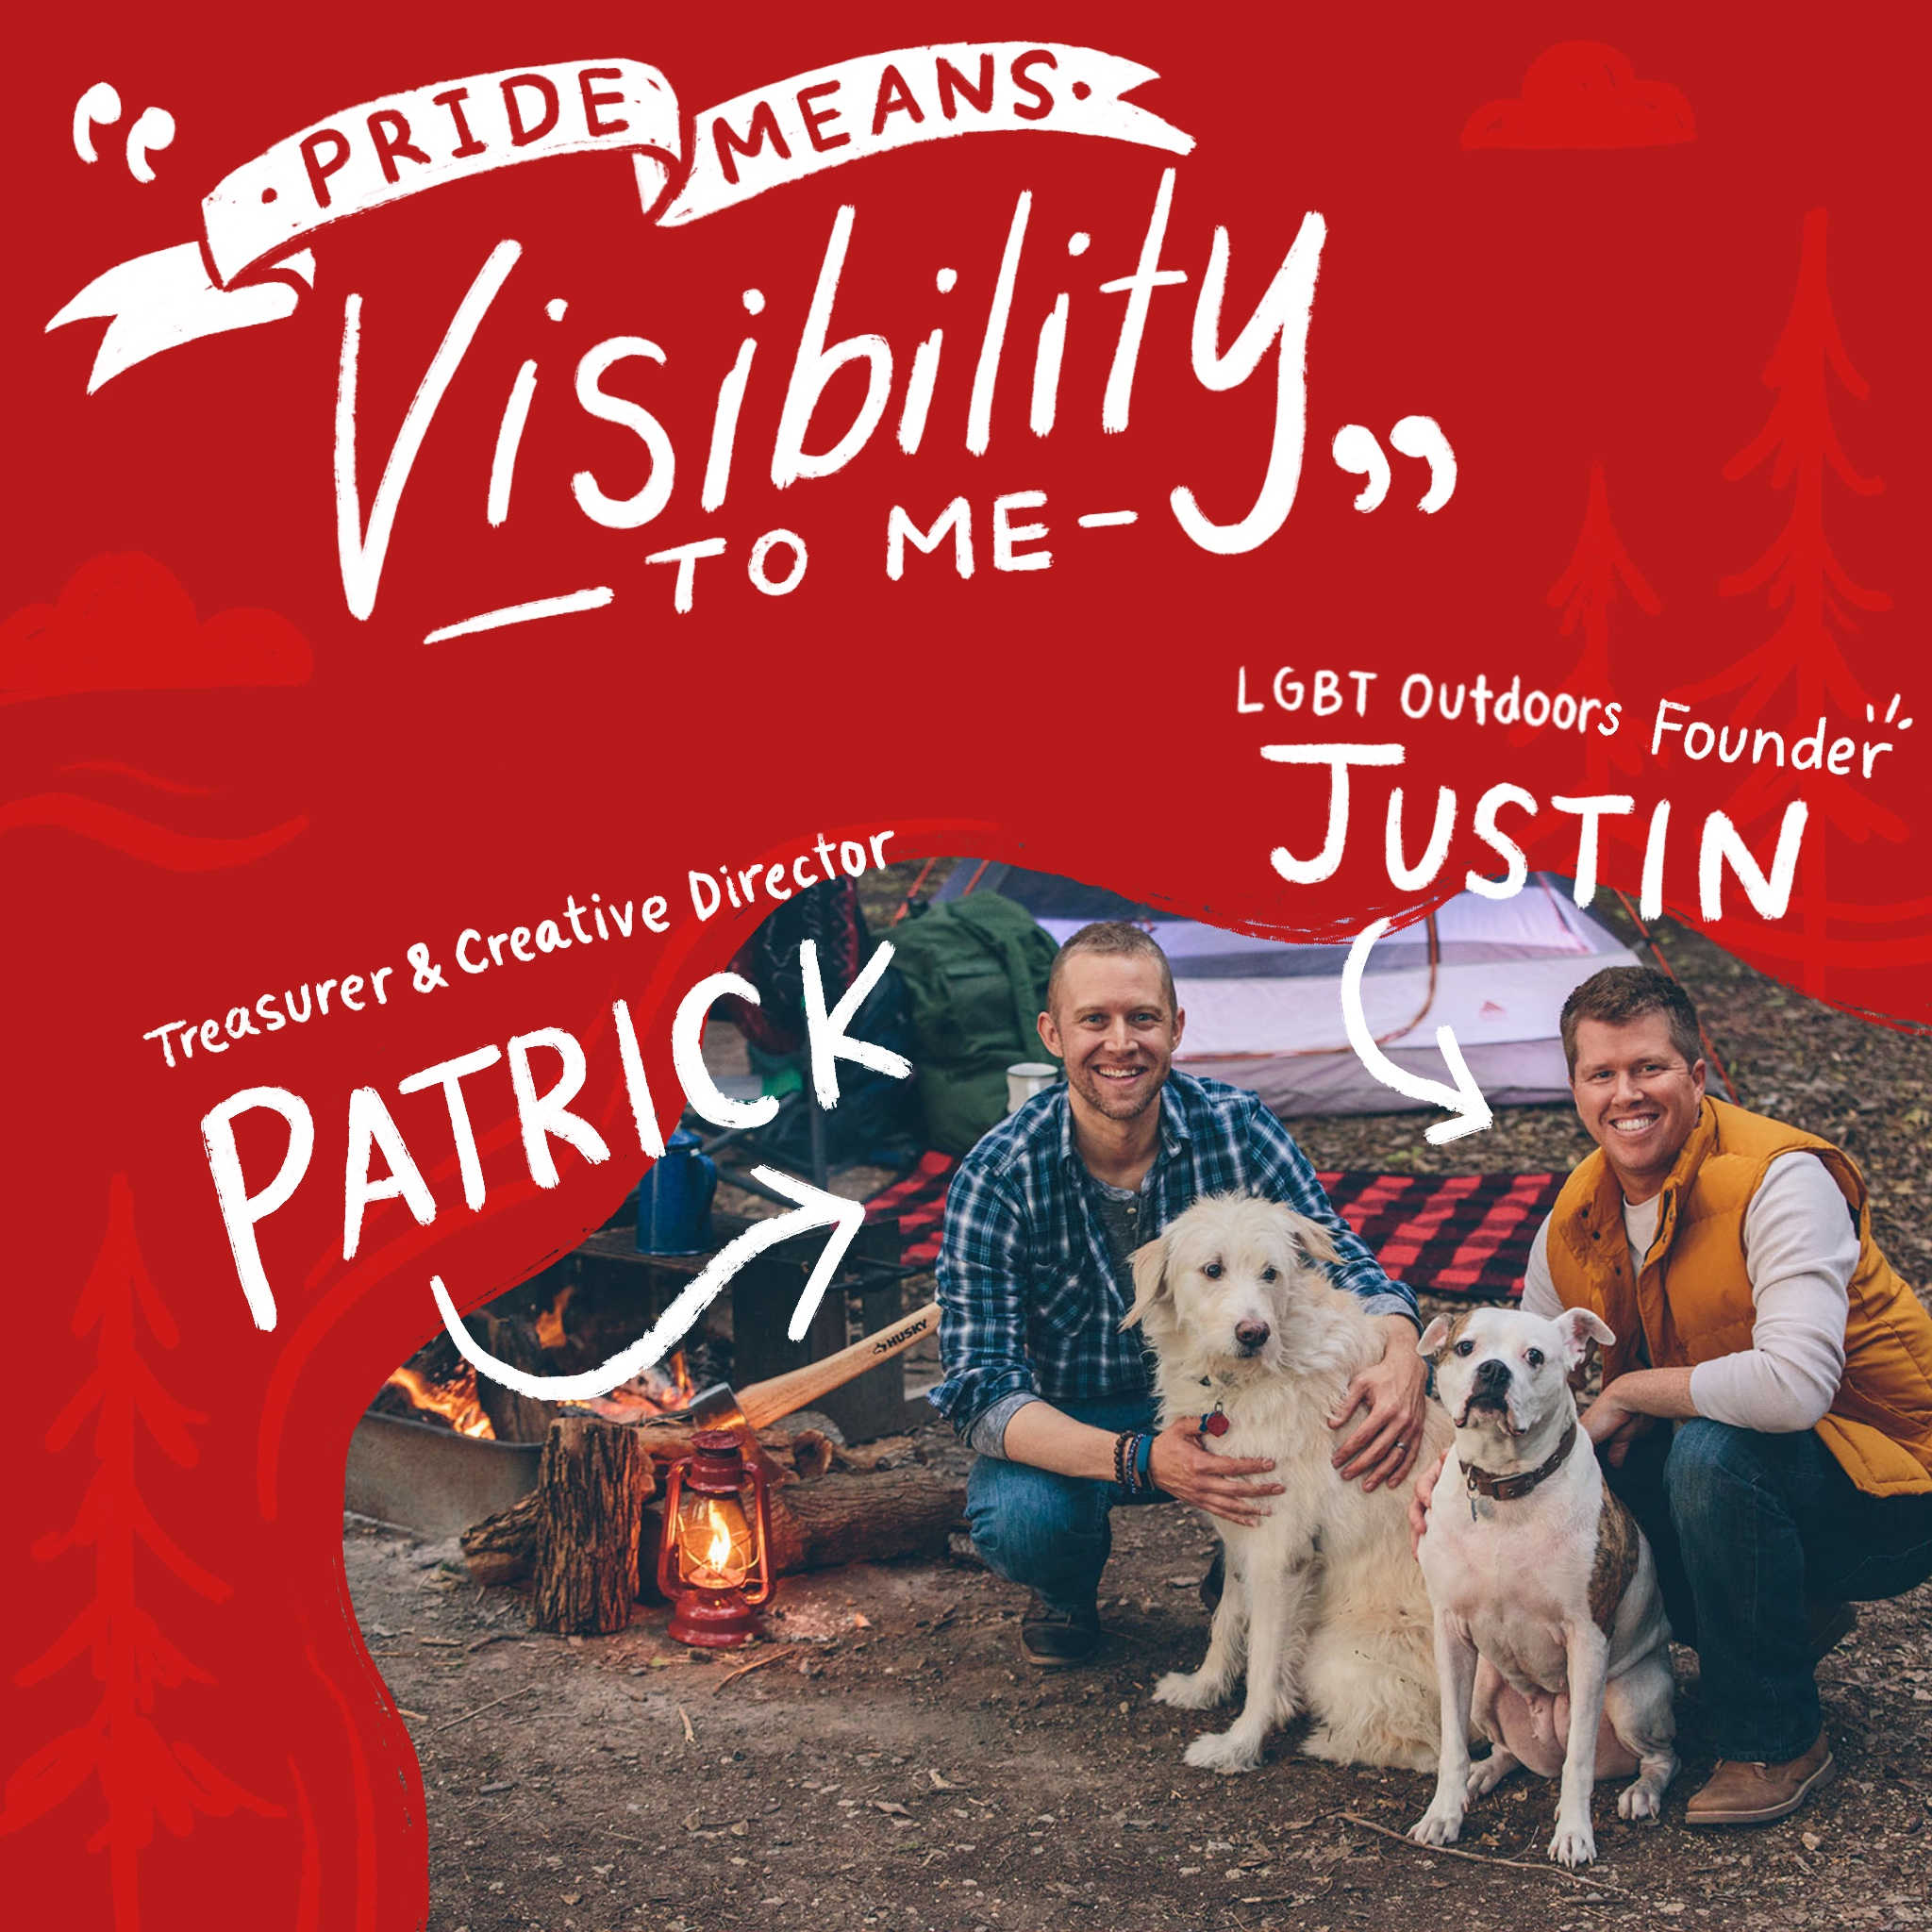 LGBT Outdoors founder Justin